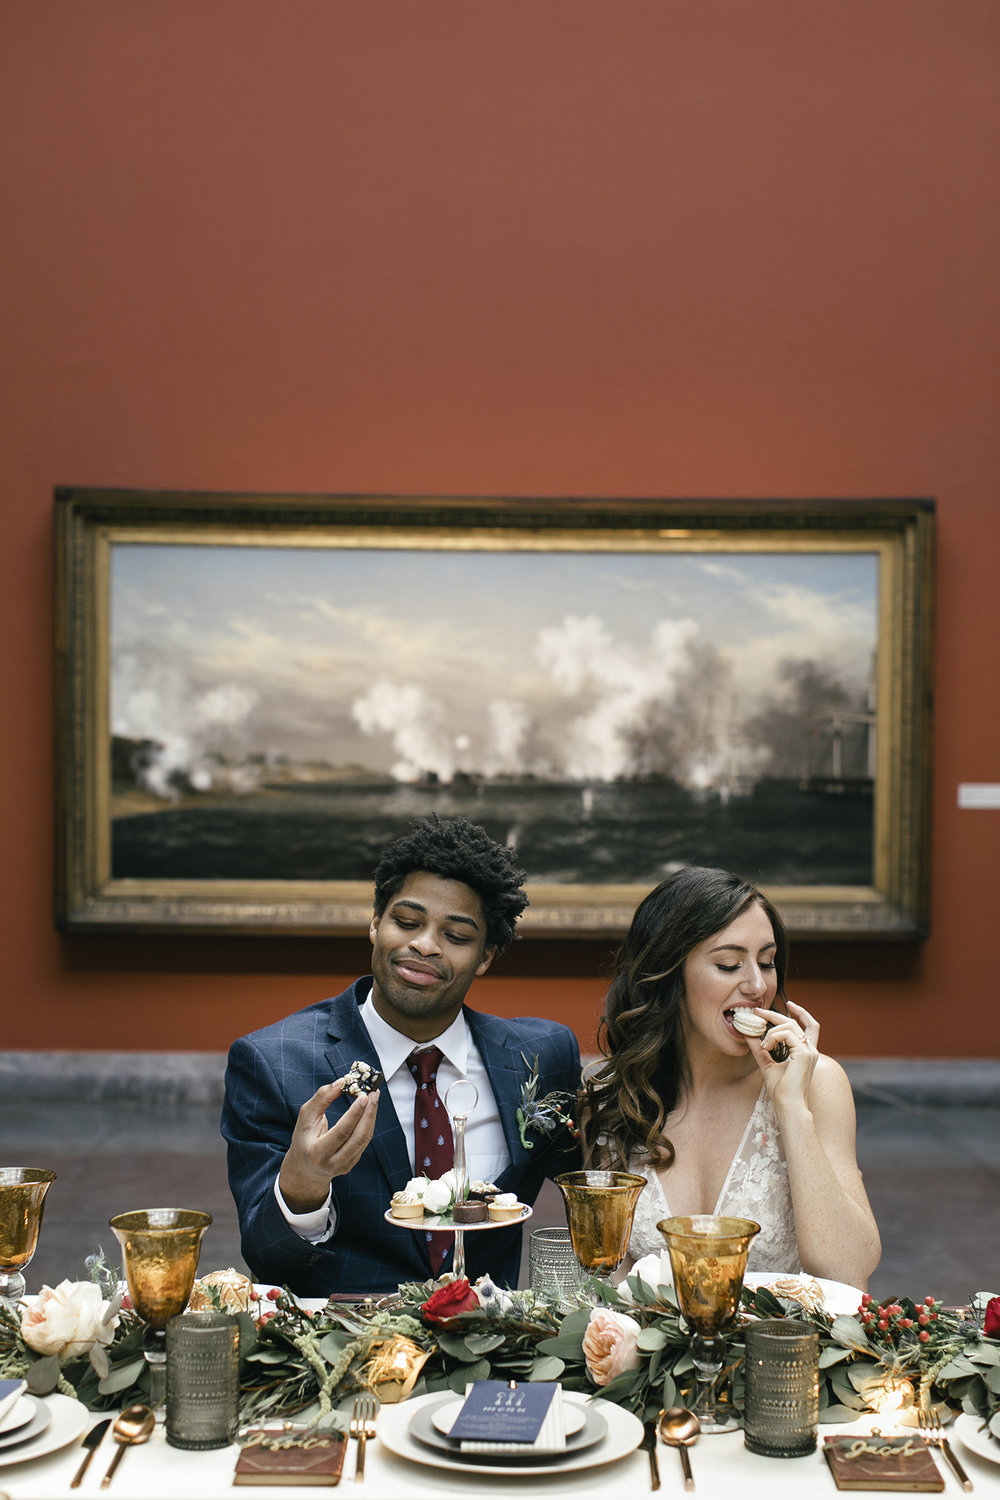 photography-wedding-weddings-natural-candid-pafa-pennsylvania academy-philadephia-philly-philadelphia wedding-mixed race-editorial-modern-fine-art-062.JPG